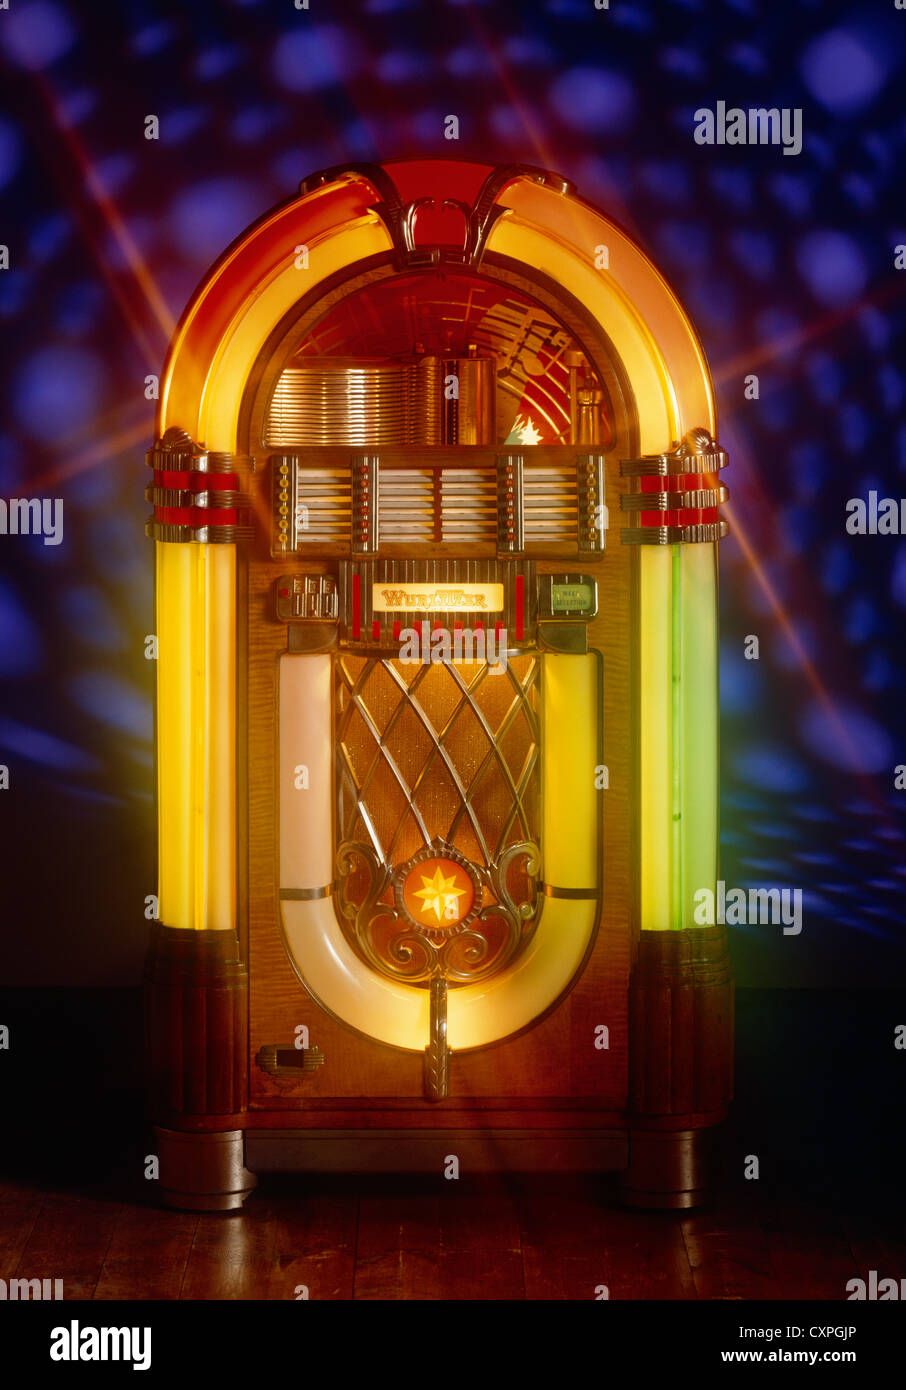 Jukebox old music player Stock Photo: 50897806 - Alamy